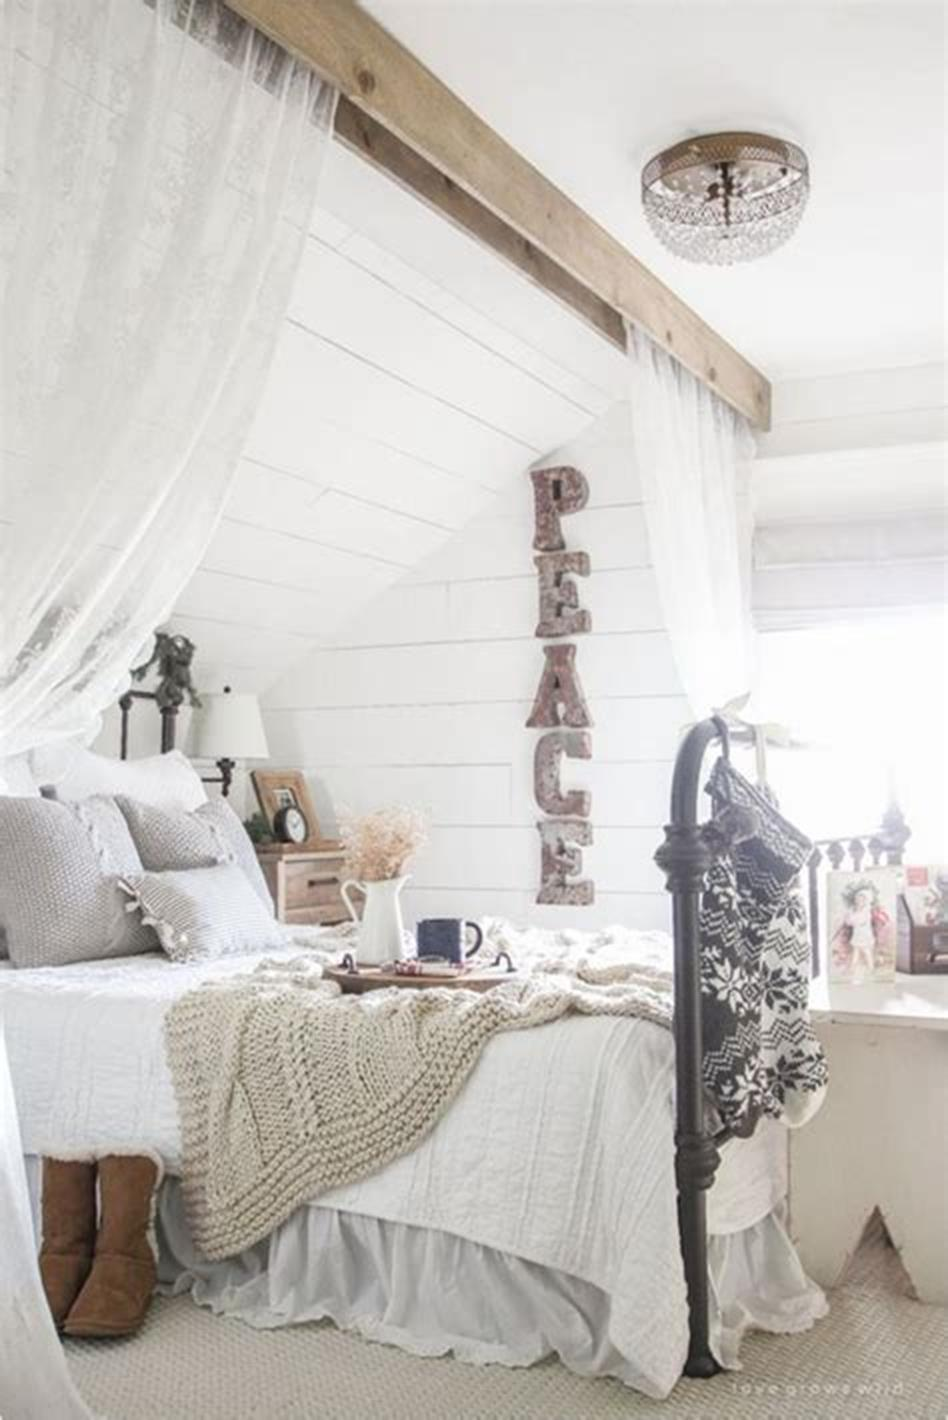 48 Stunning Farmhouse Master Bedroom Design Ideas 2019 15